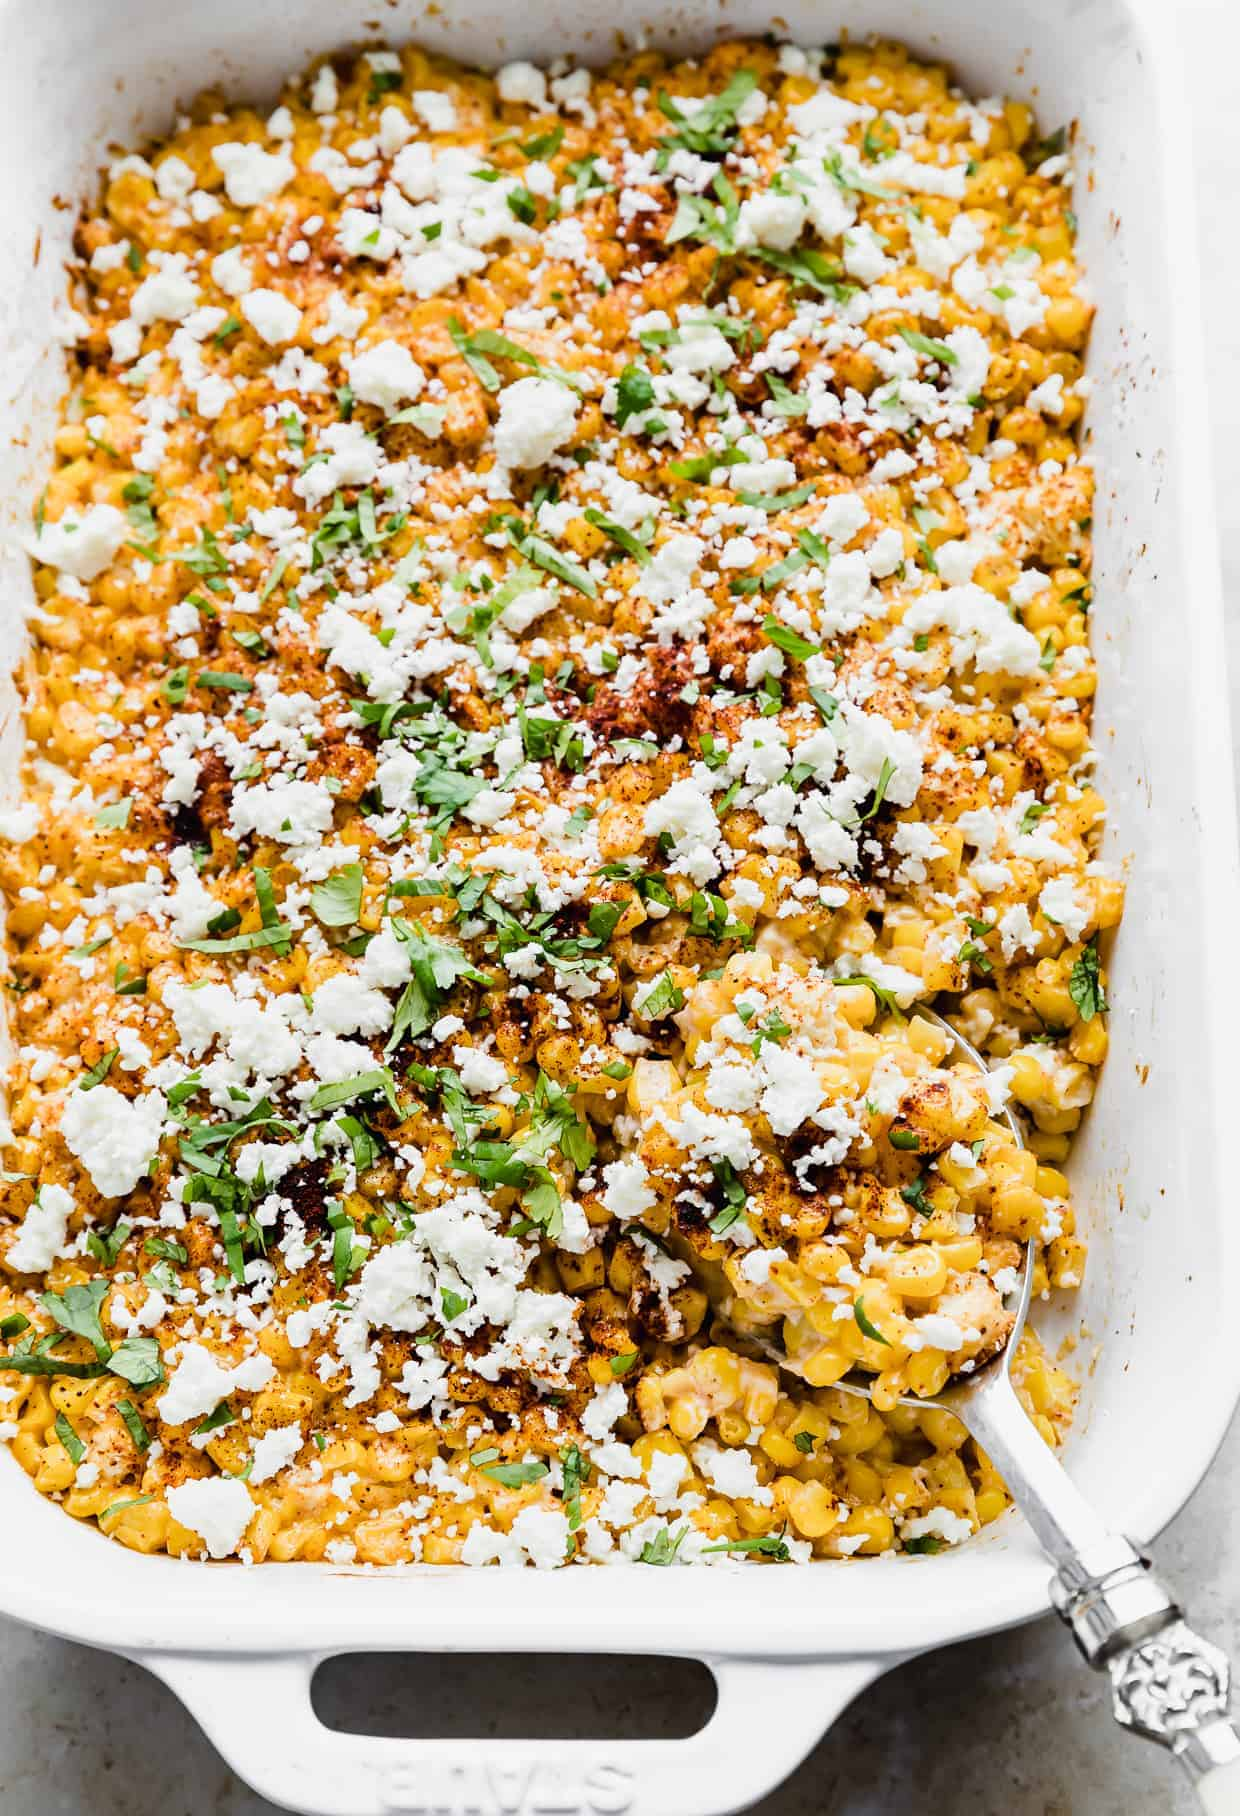 A spoon scooping into a casserole dish that is full of cilantro and chili powder covered corn kernels.